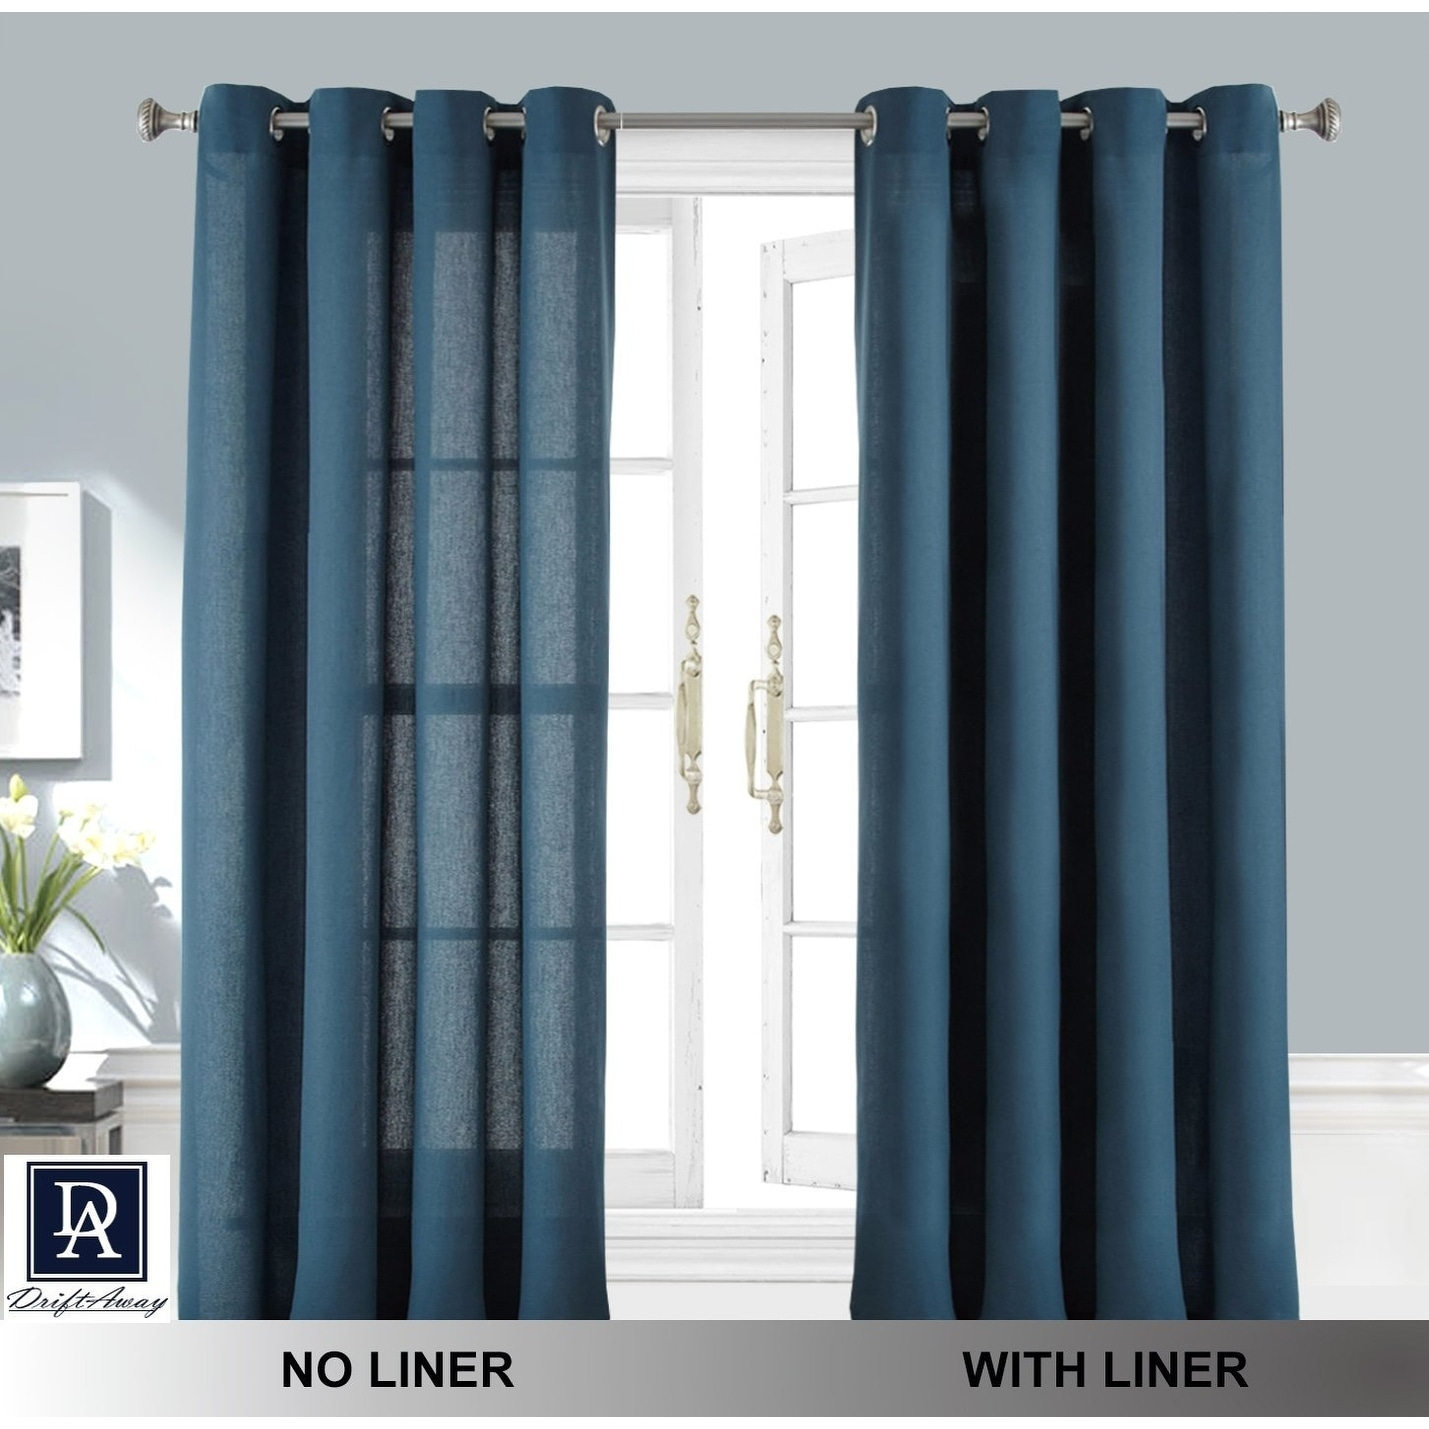 shipping orders on panel overstock home drape garden drapes blackout pocket rod over of liner free pair set product curtain aurora